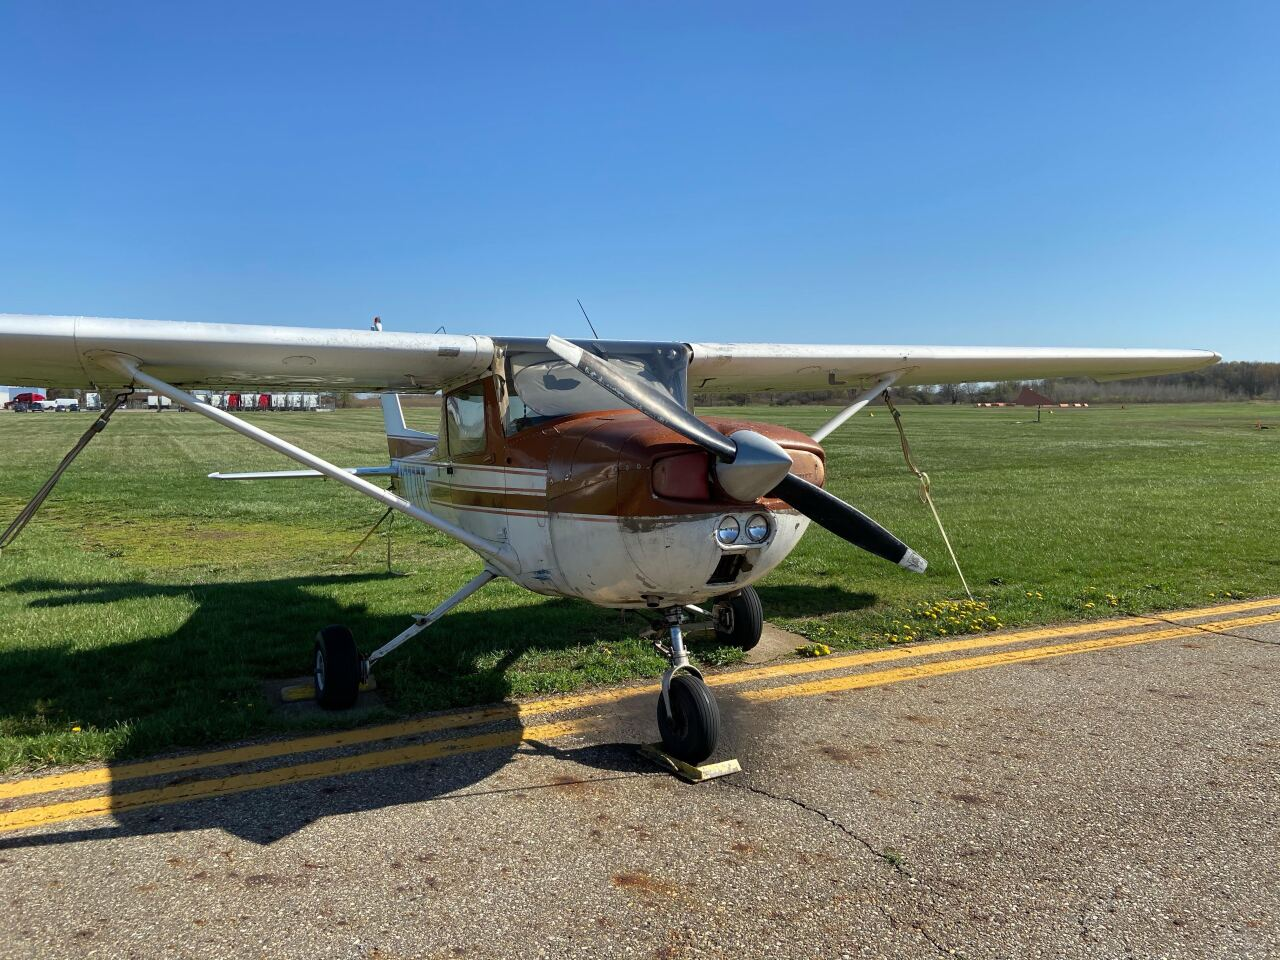 Here is a plane at the Abrams Municipal Airport in Grand Ledge